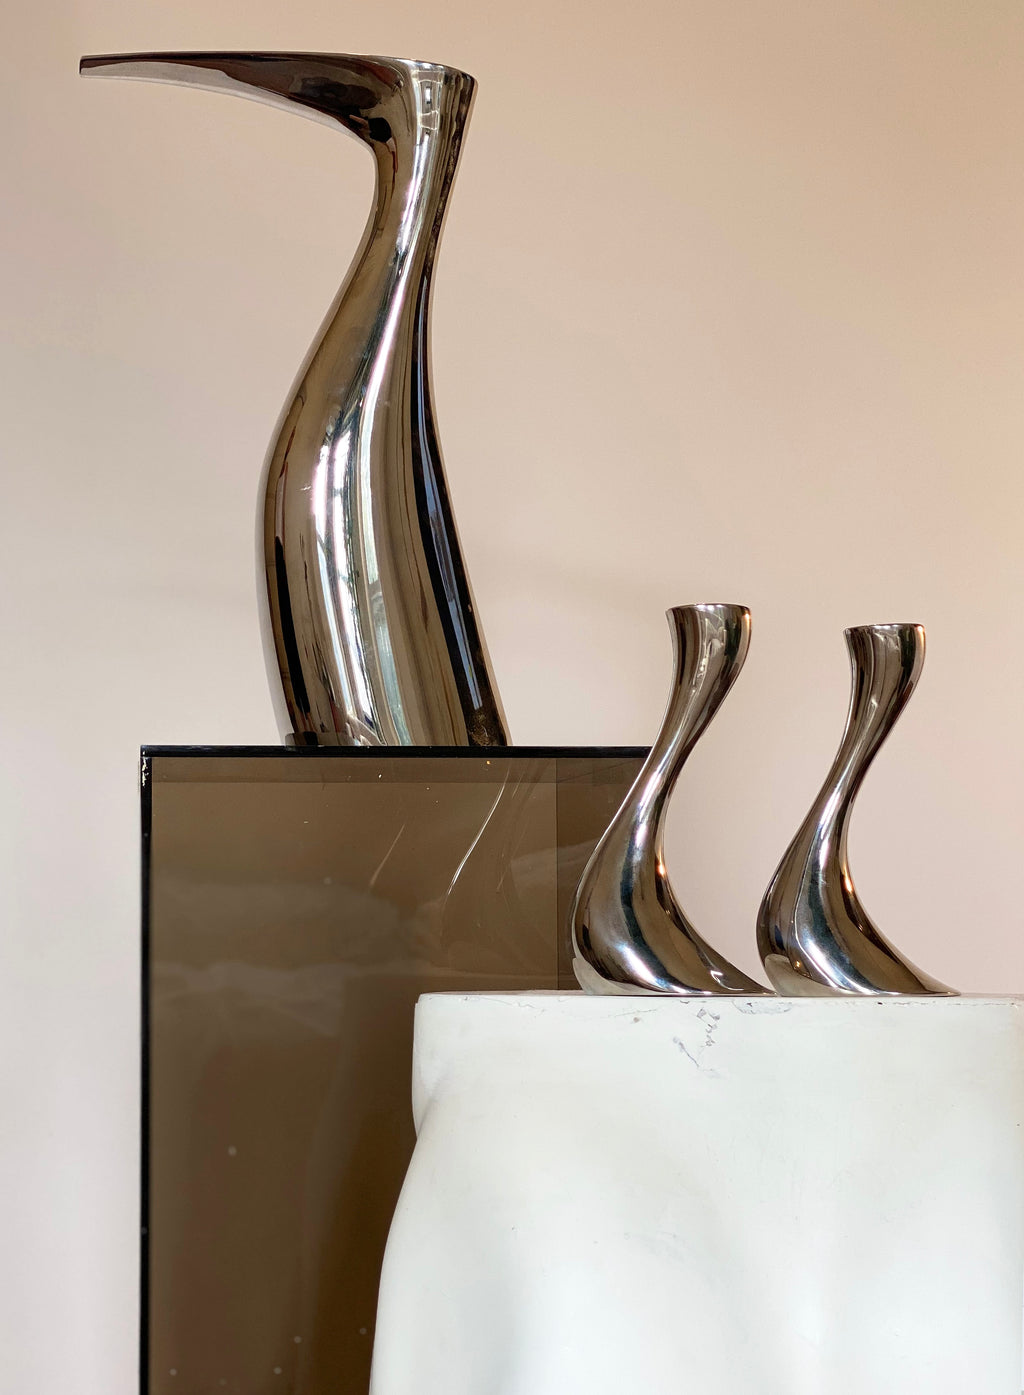 Georg Jensen Ibis Pitcher by Allan Scharff